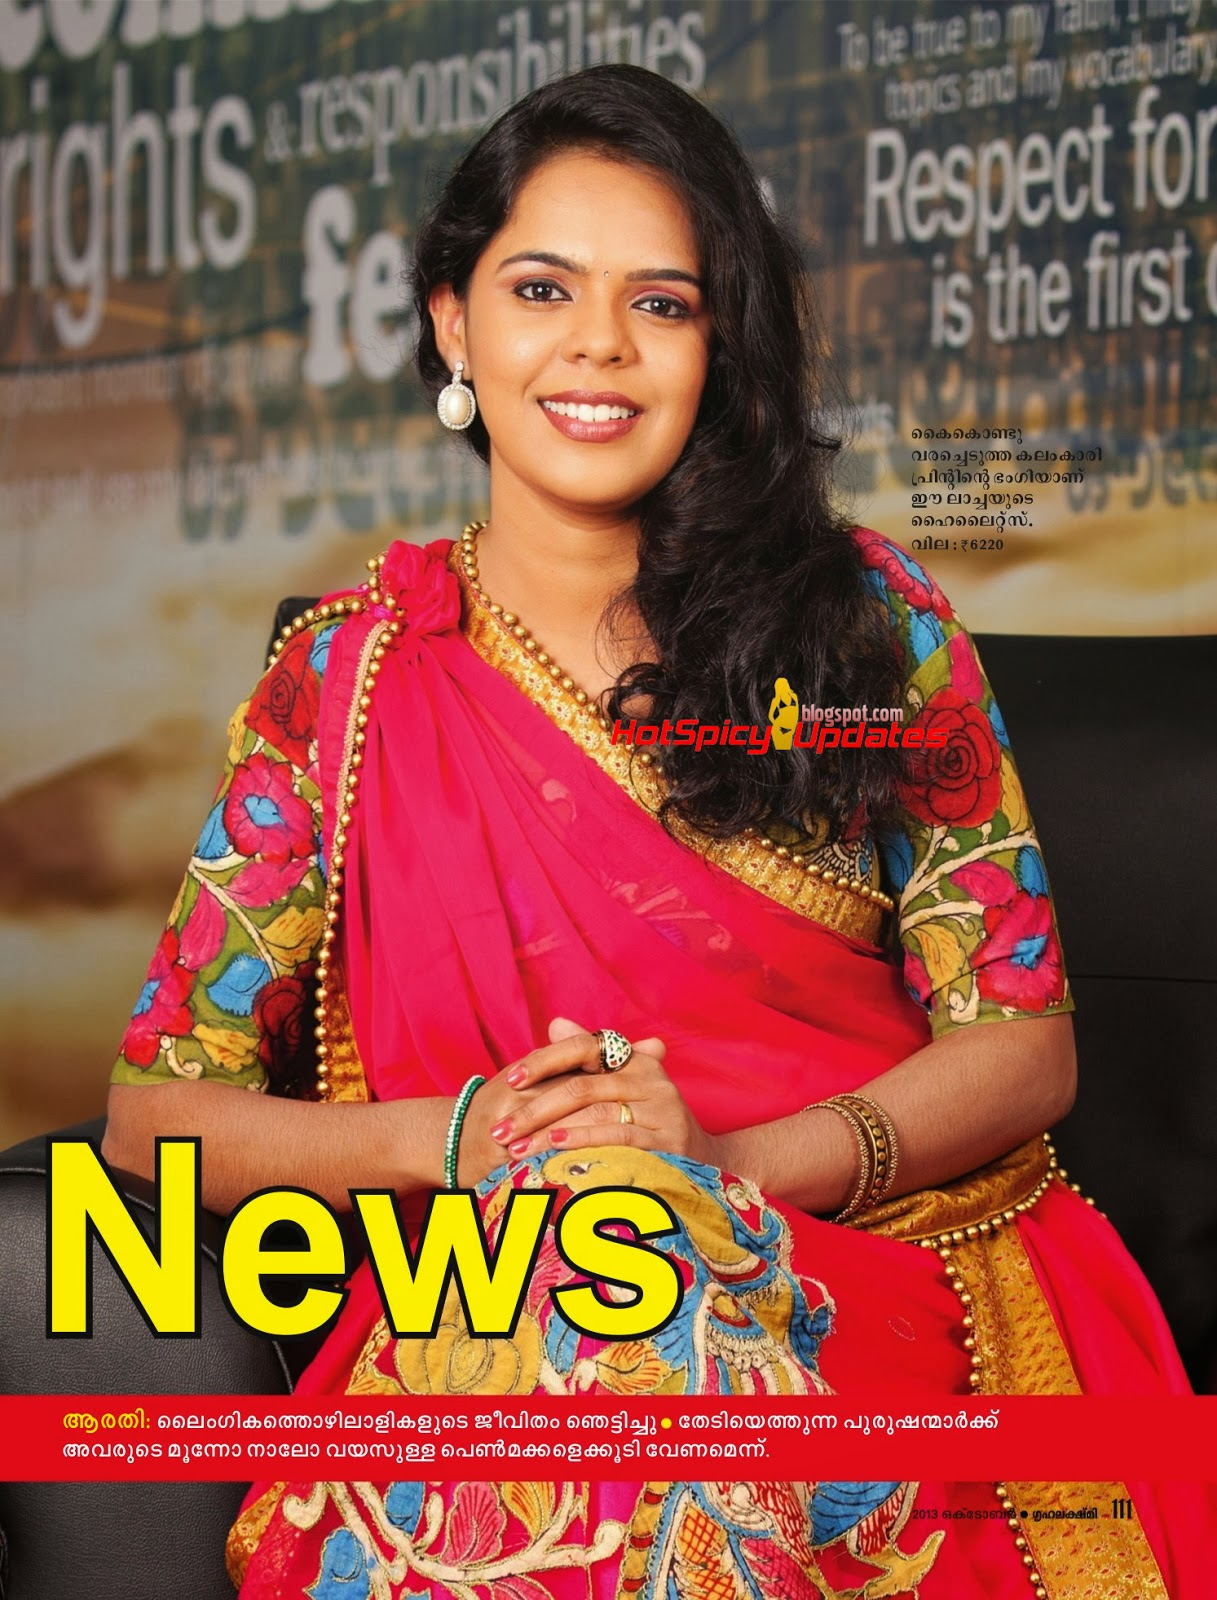 Reader S Question Can I Transfer Miles From One Airline: Mathrubhumi News Readers Fashion Shoot Scans From